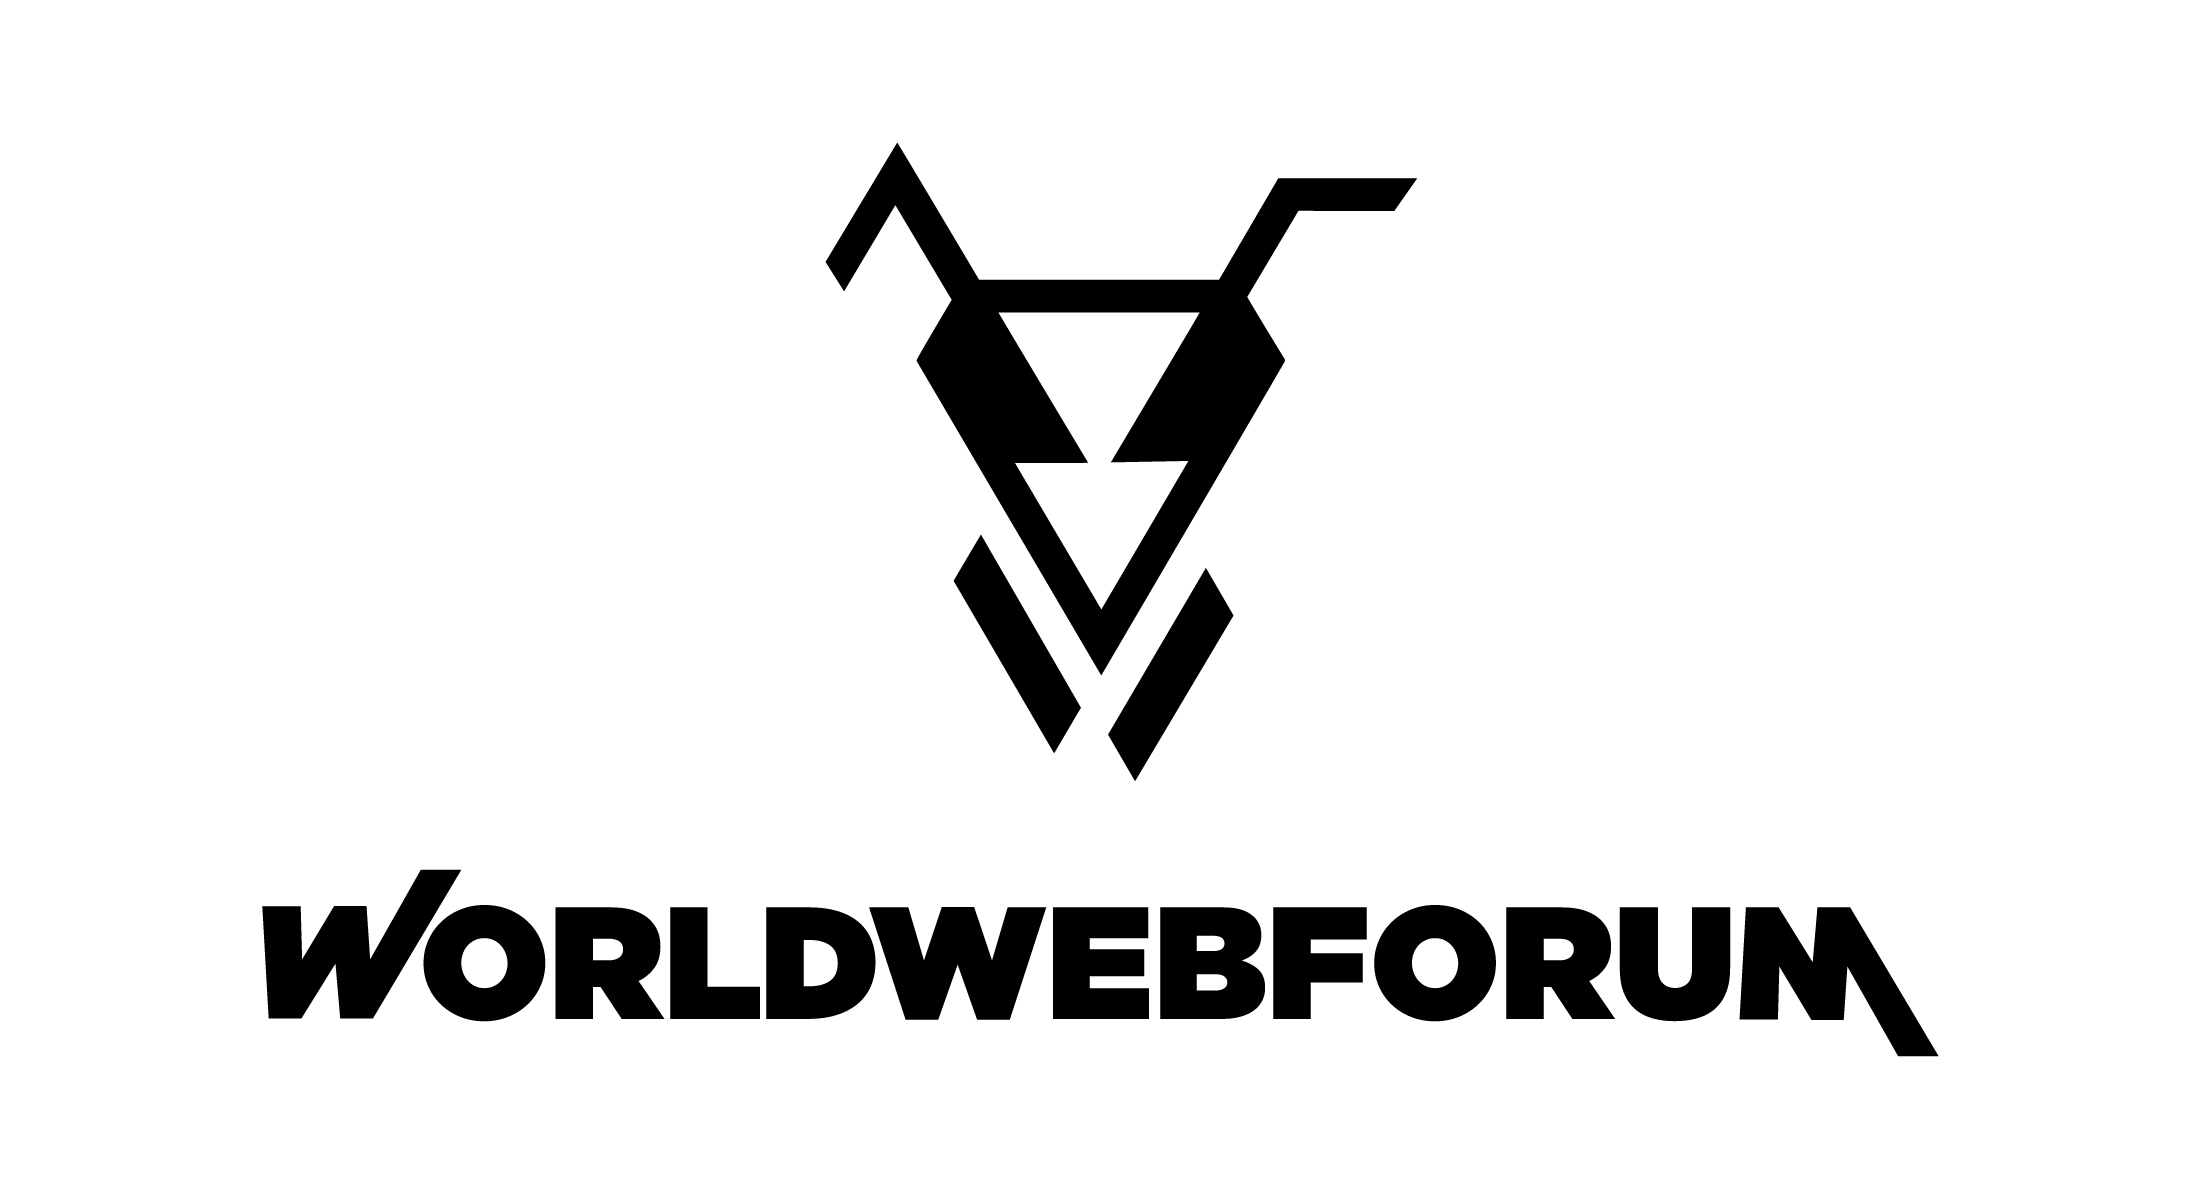 - WORLDWEBFORUM is an annual thought-leadership movement in Zurich that attracts more than 1'500 guests, of which 85 percent of whom are C-level executives. Thanks to its deep relationships with opinion leaders in hubs around the globe and top global academia, WORLDWEBFORUM brings together the most forward-thinking business minds with the aim of inspiring the courage to drive change in the world.